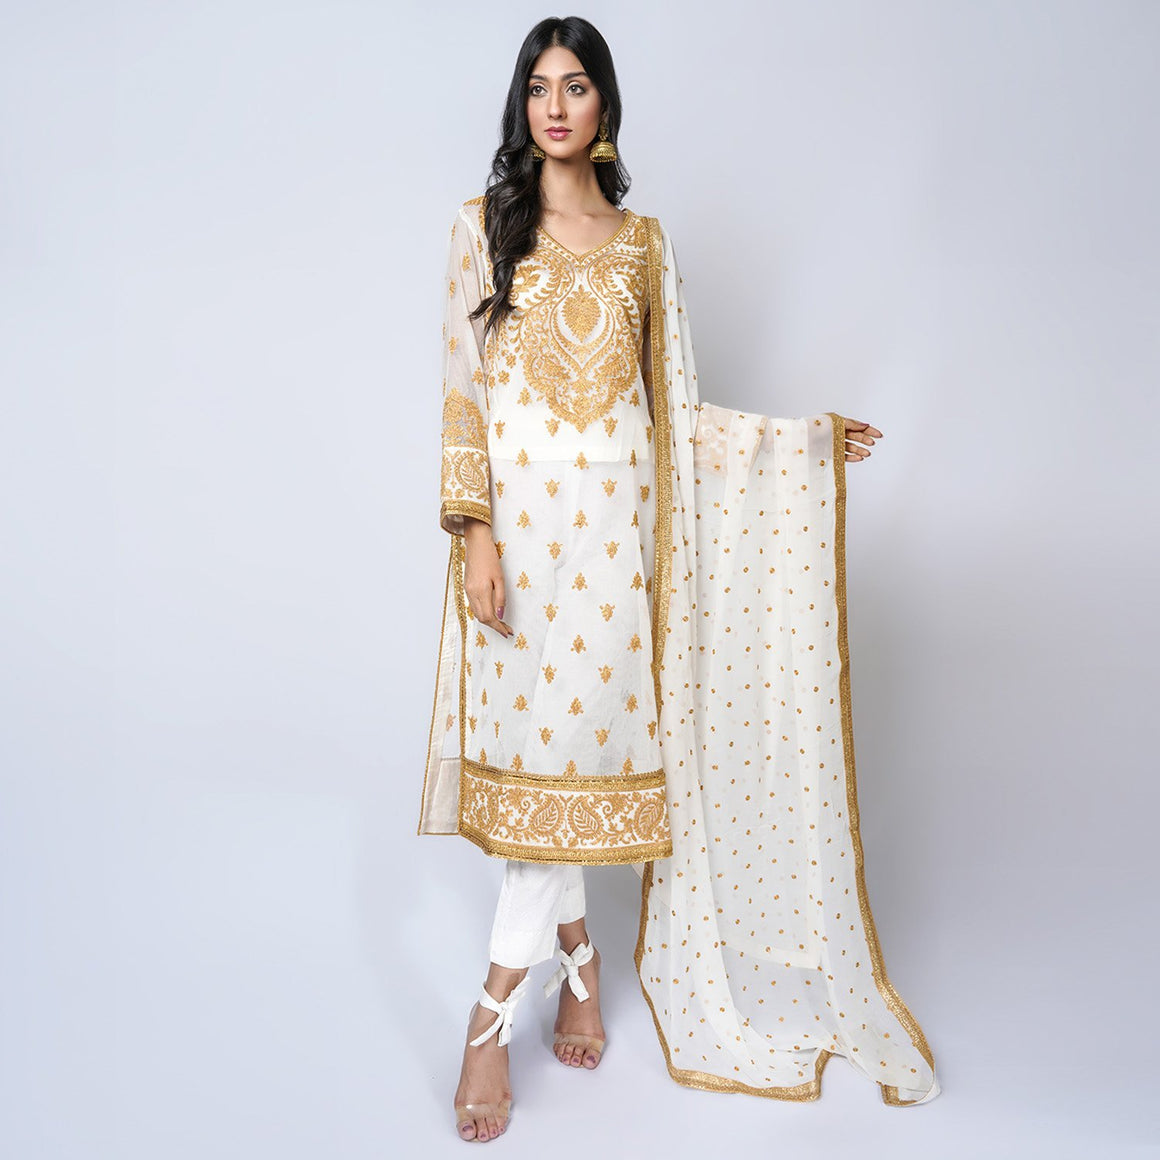 Rizwan Beyg - Mateeni Kurta On Cotton Net Shirt with Dupatta